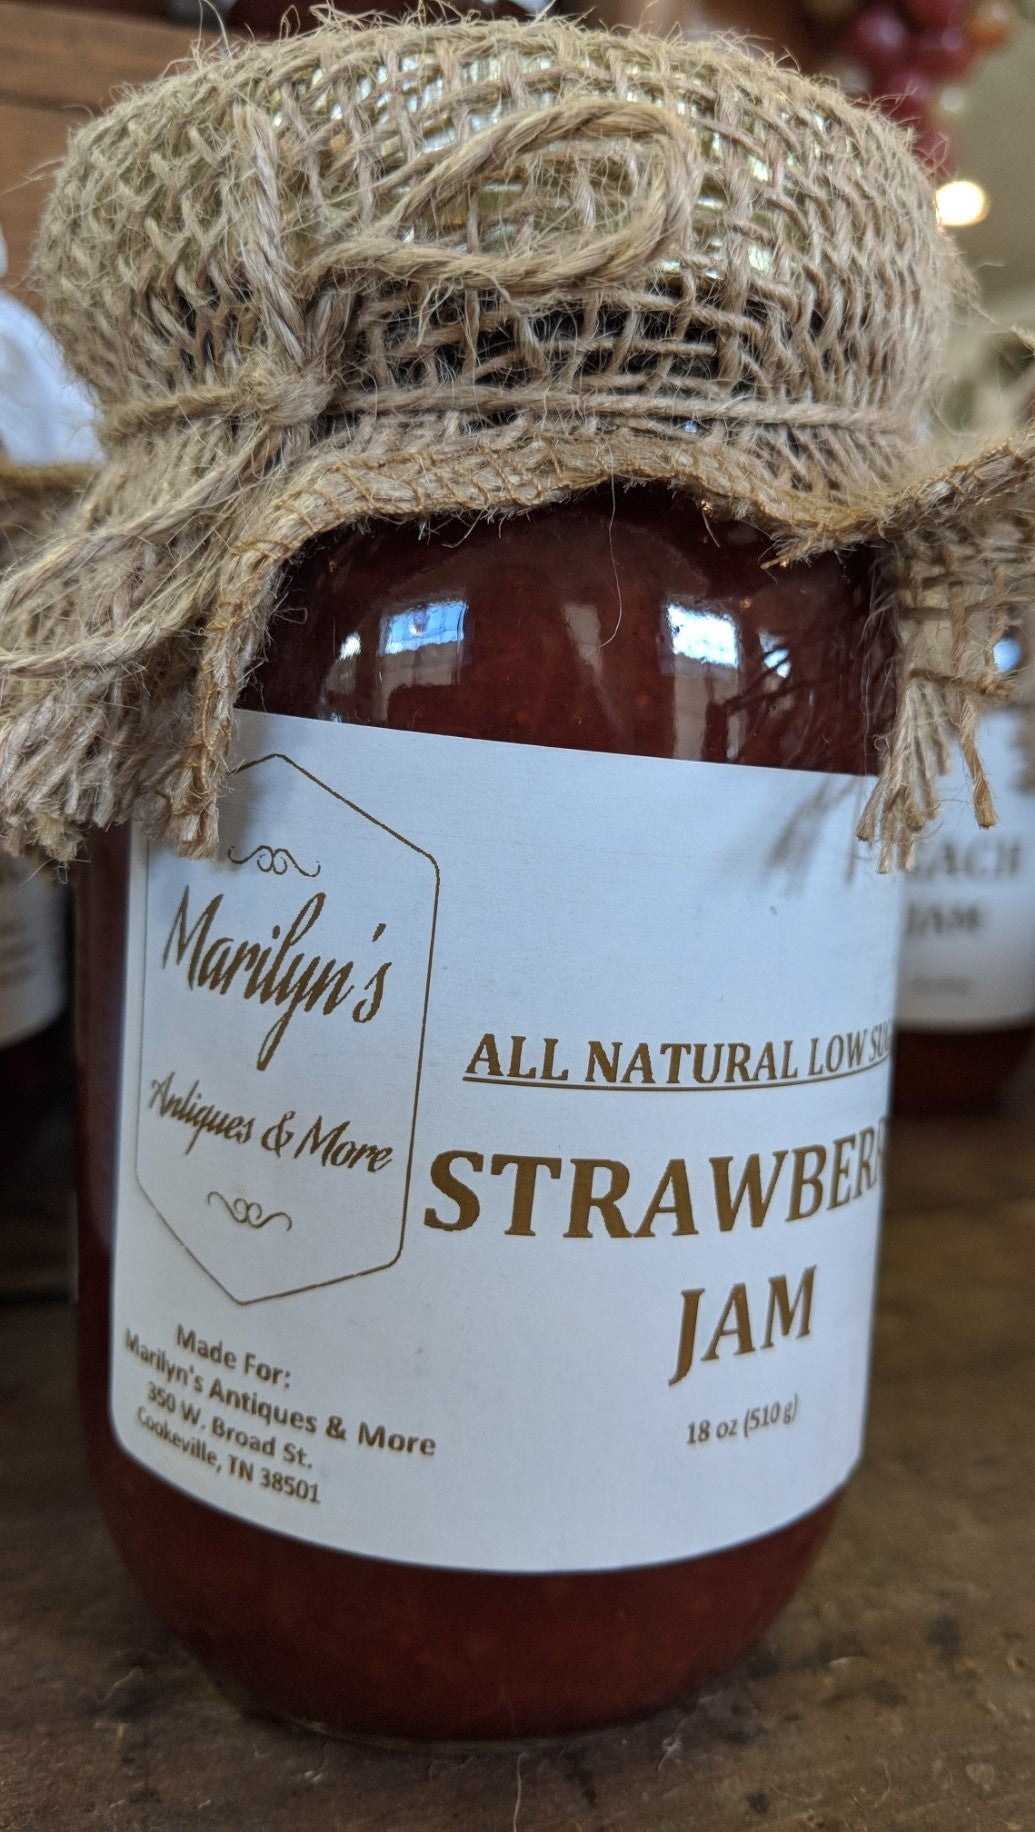 All Natural Low Sugar Strawberry Jam